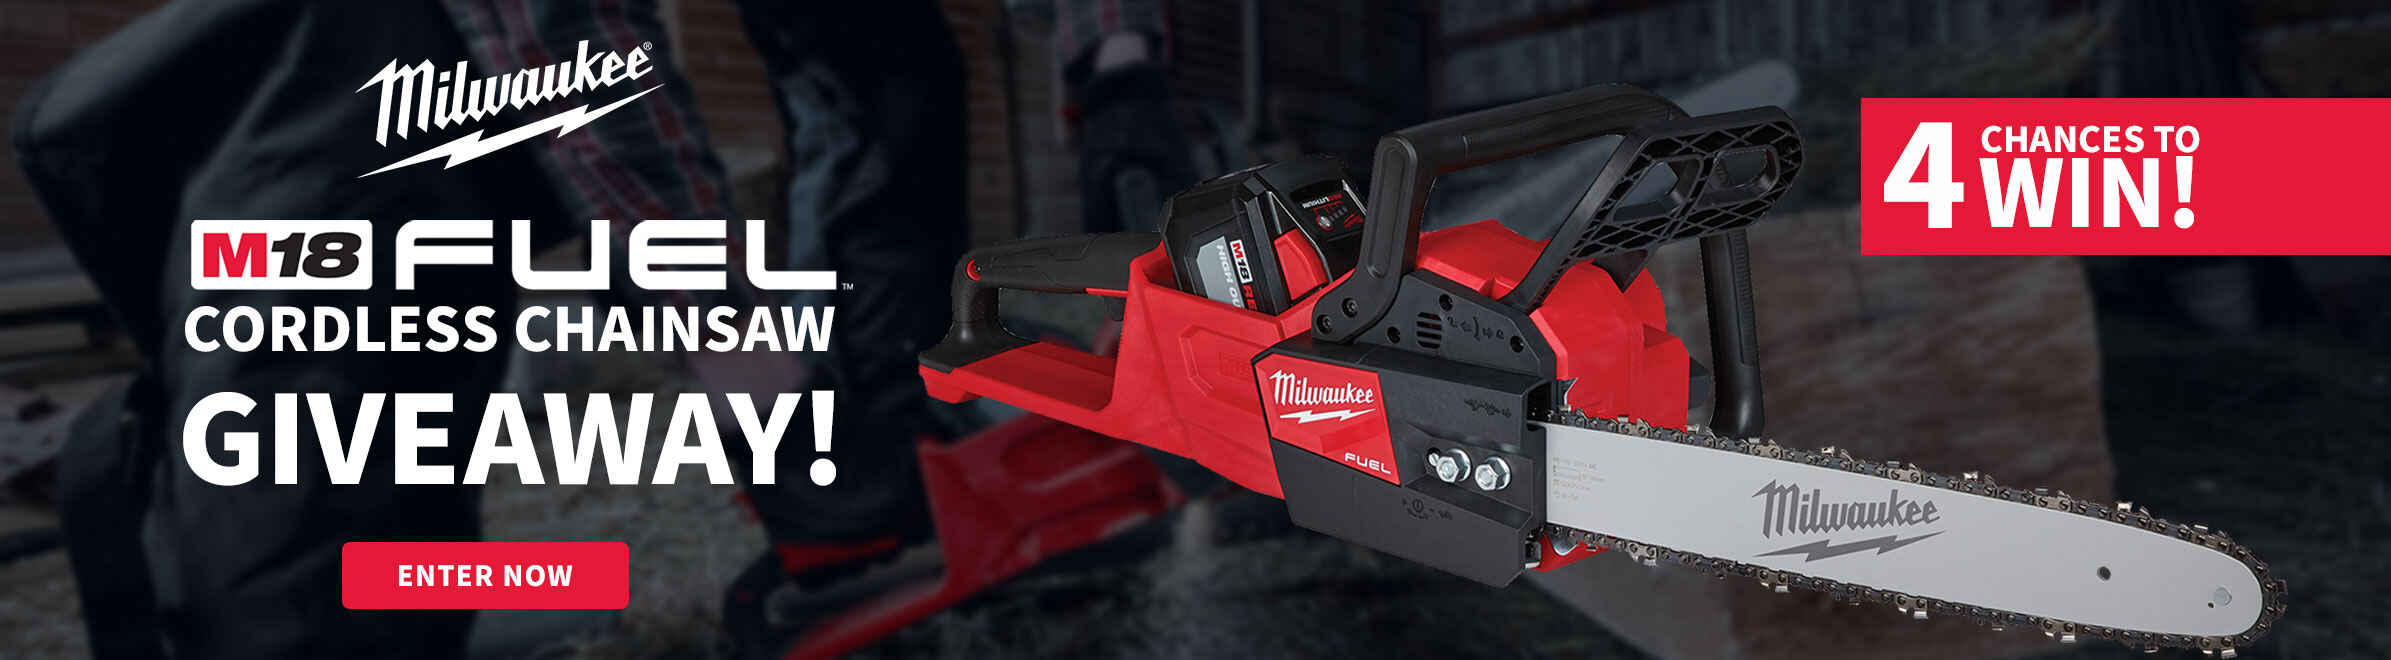 Milwaukee M18 FUEL Cordless Chainsaw Giveaway!